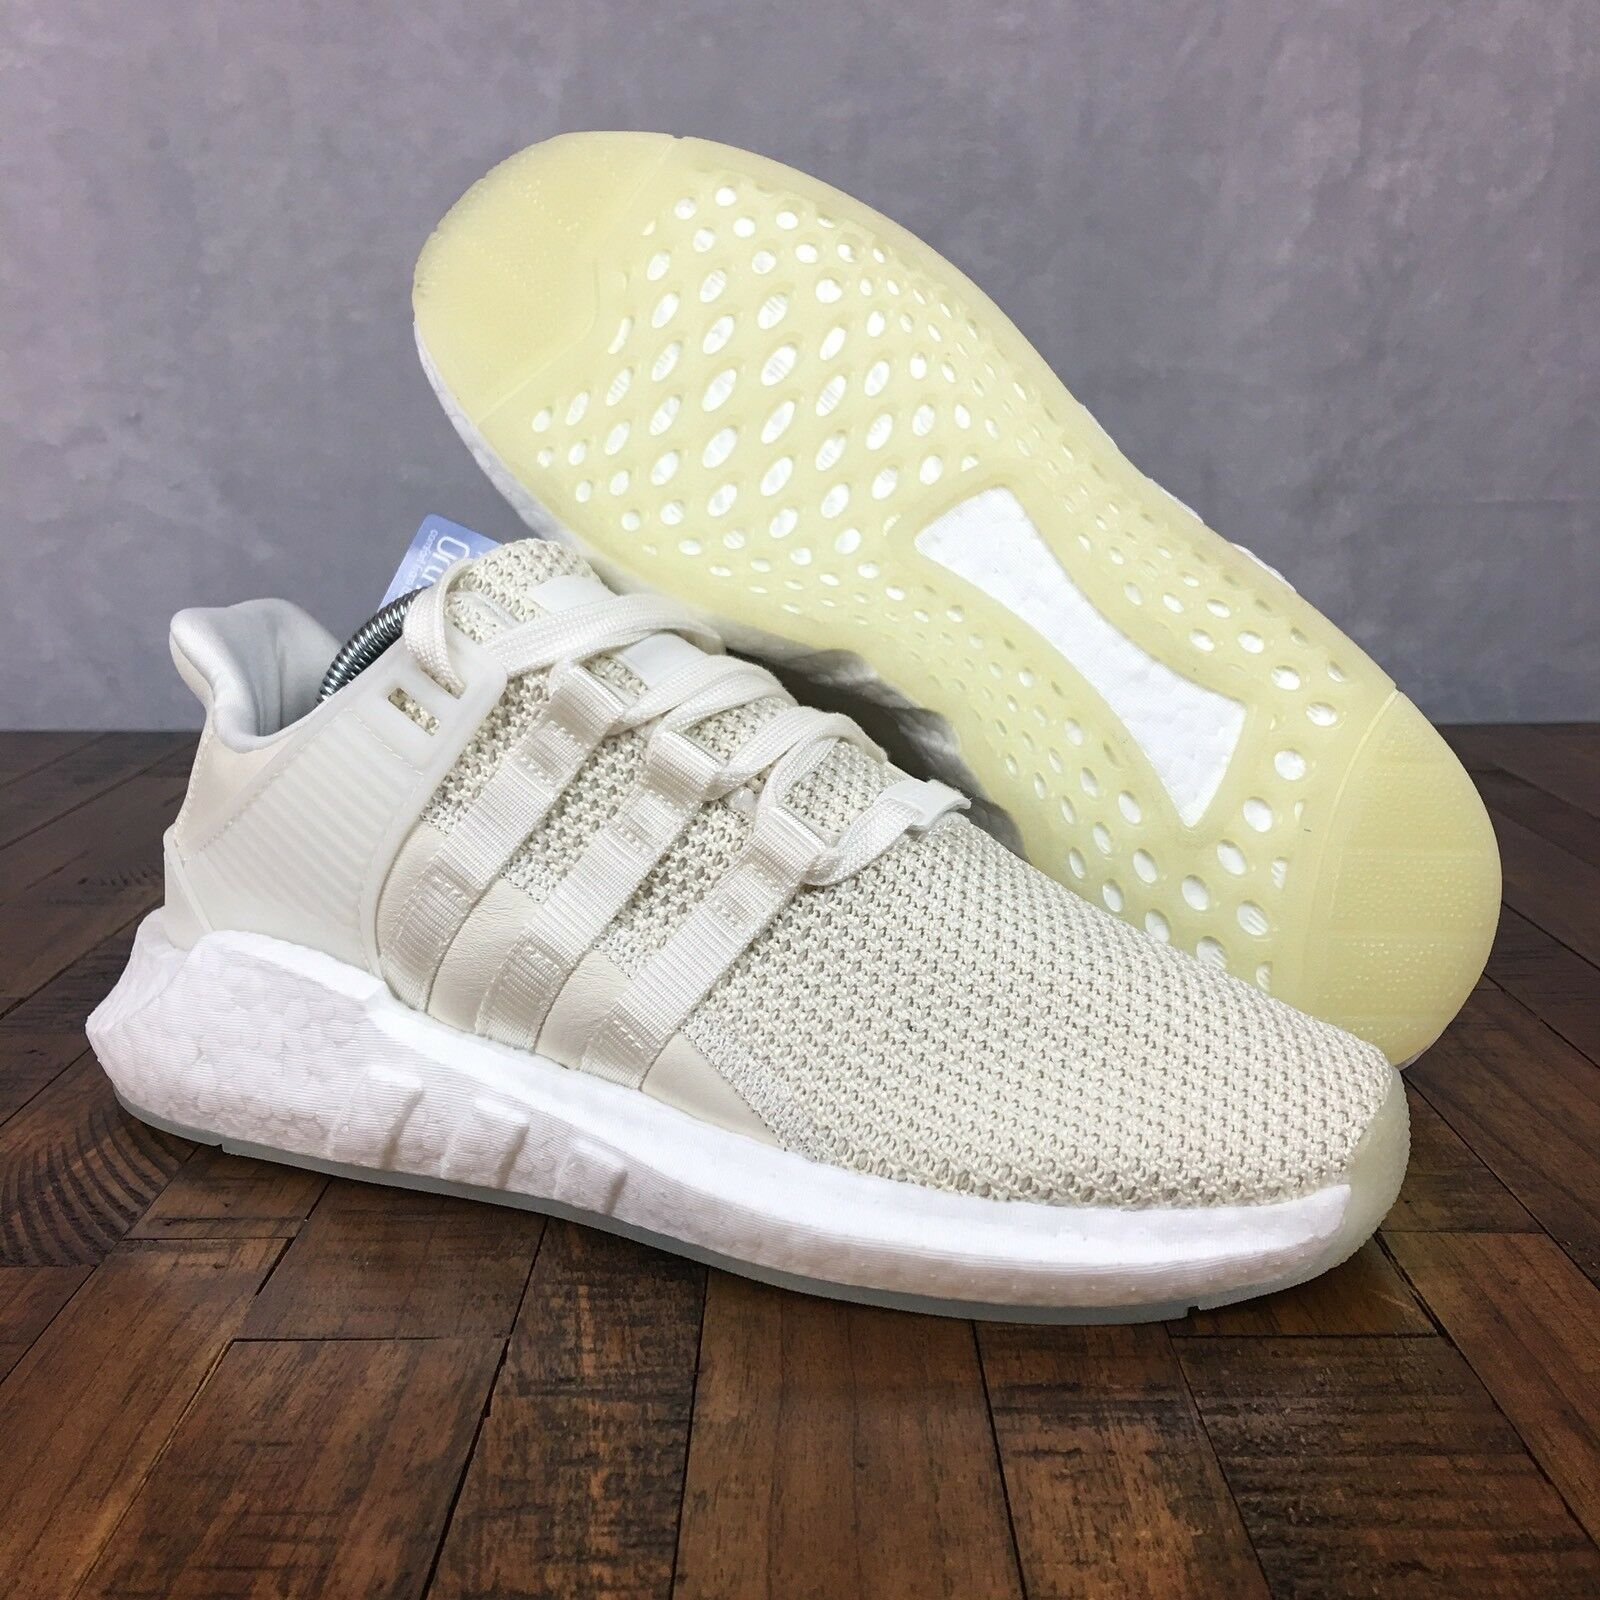 Adidas EQT Support 93 17 Boost shoes BZ0586 Off White Mens Size 8 or Womens 9.5